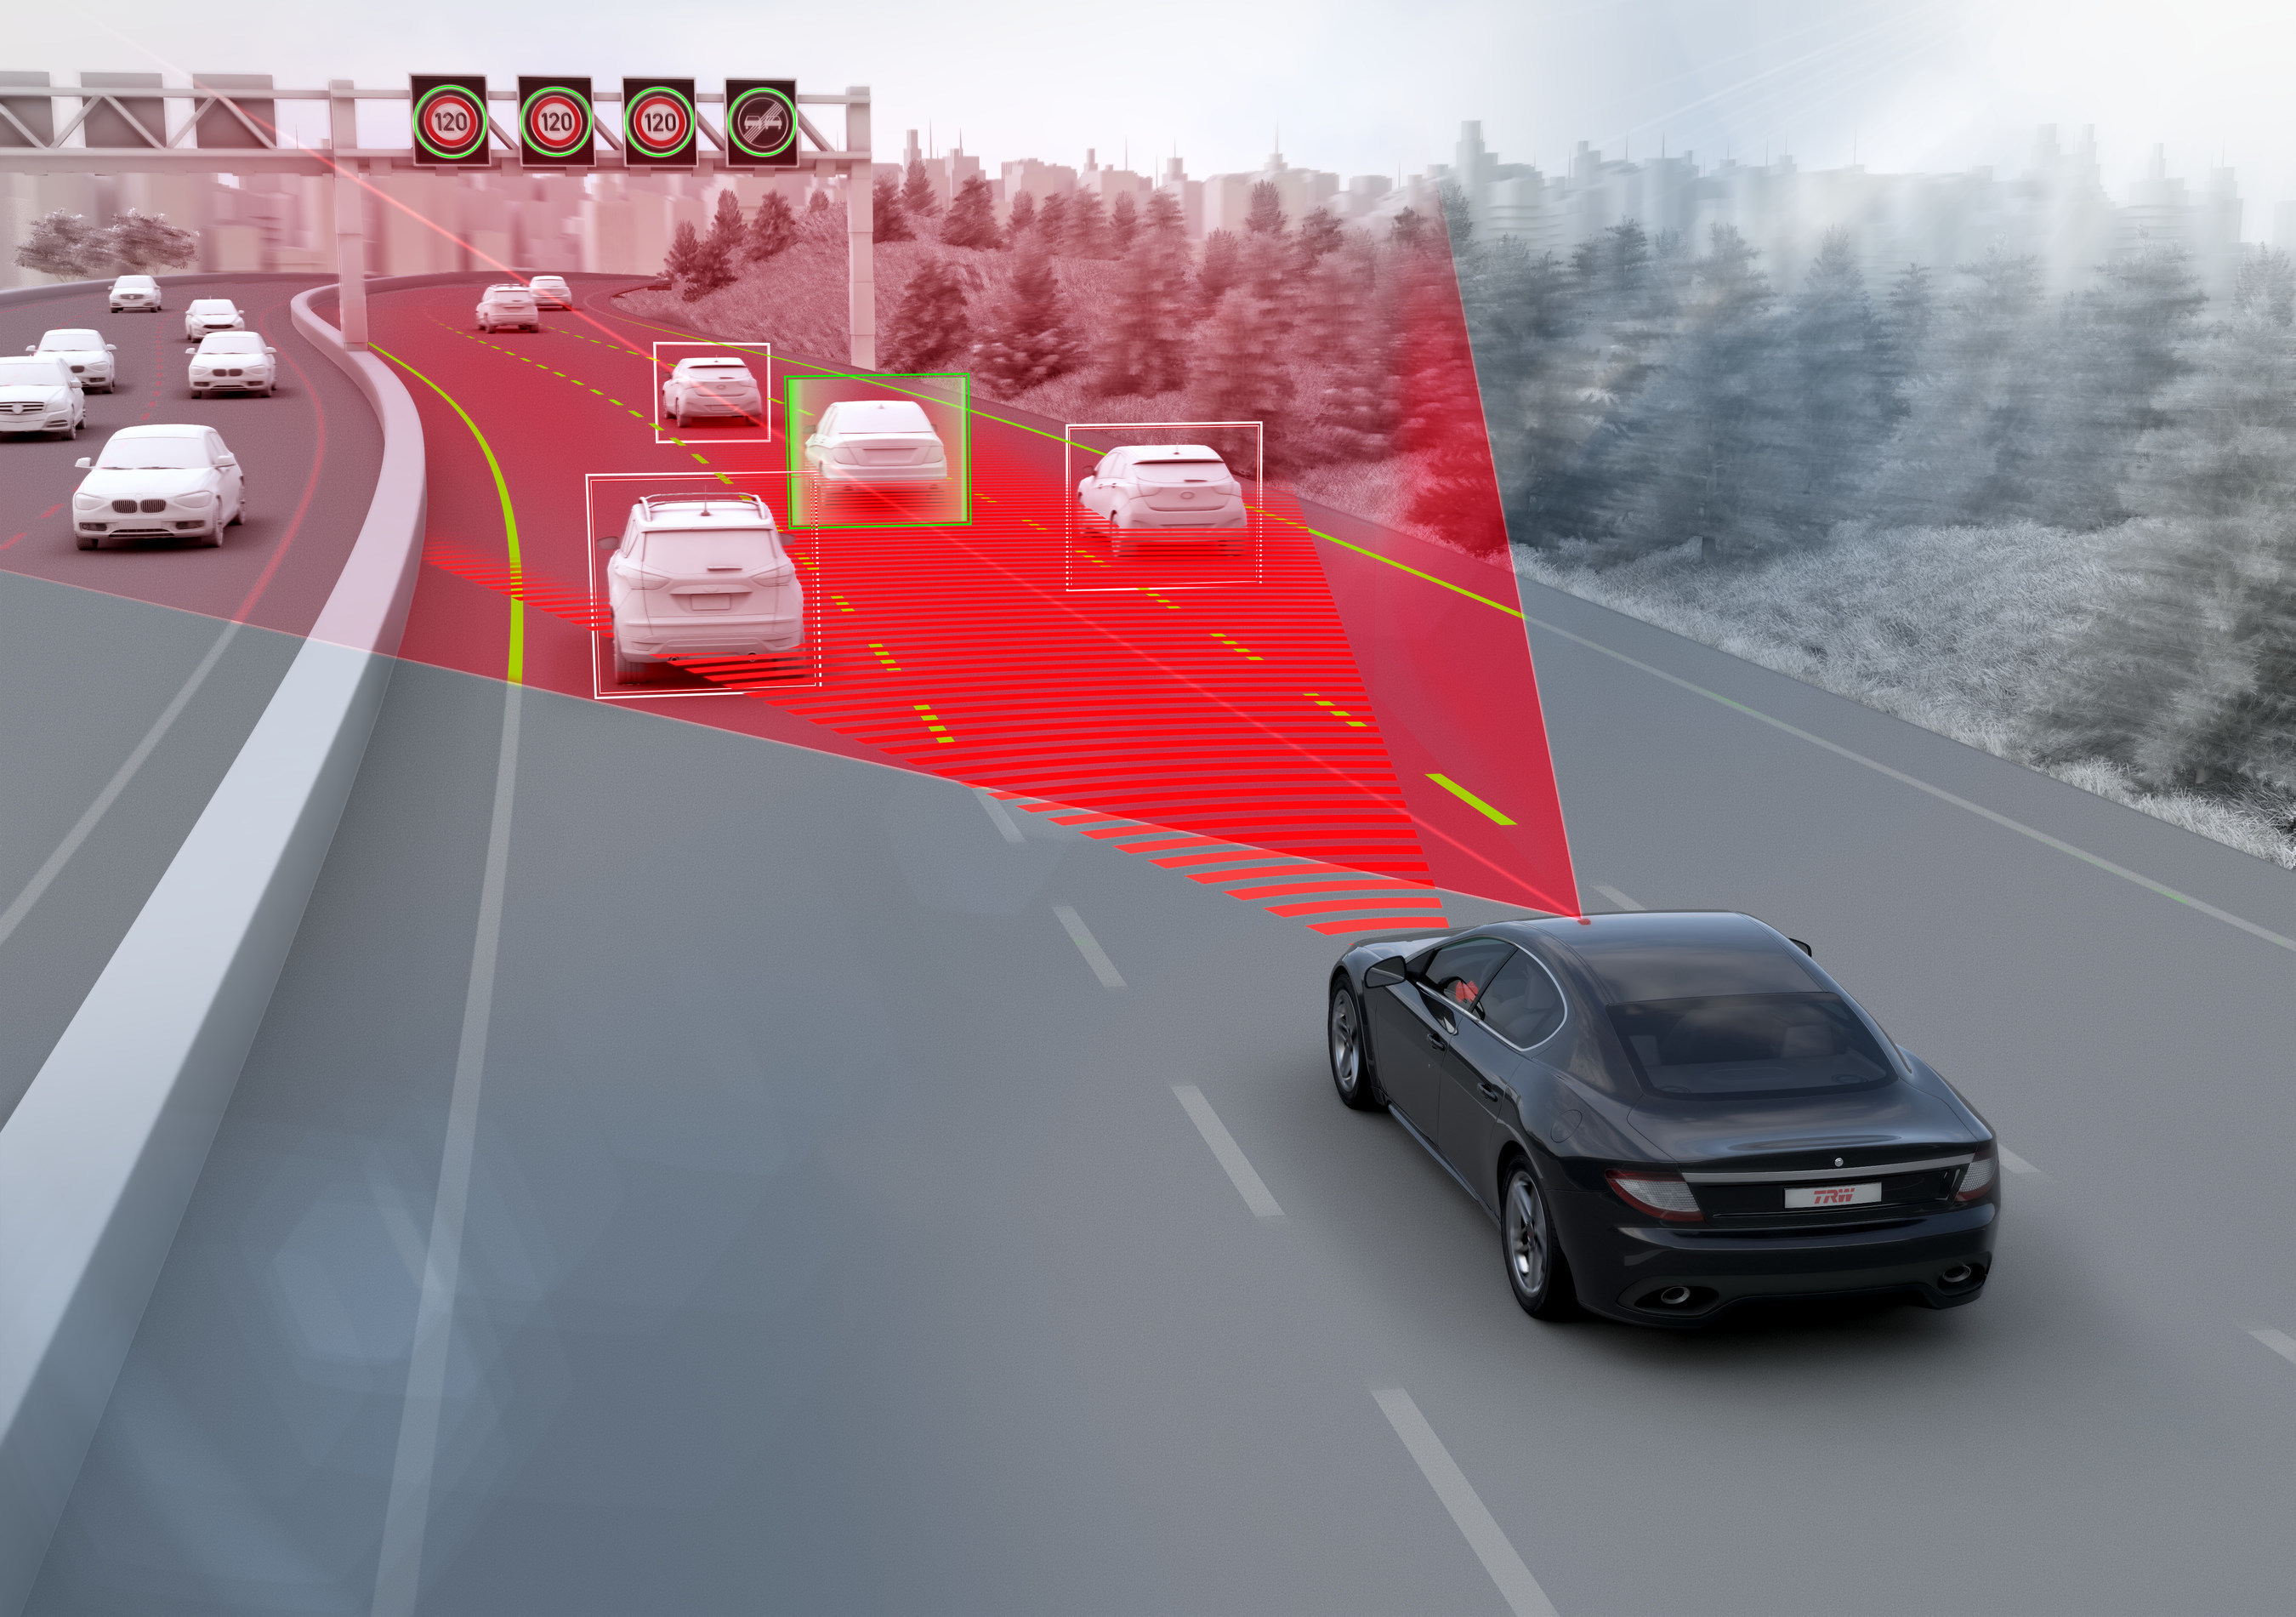 Highway Driving Assist (HDA) enables automatic steering, braking and acceleration for speeds from 0 kph. It combines adaptive cruise control and lane centering to maintain the lane and a set interval to target vehicles ahead. The image shows HDA for a single lane application - the company is also developing a 360 degree sensing system for multi-lane applications.